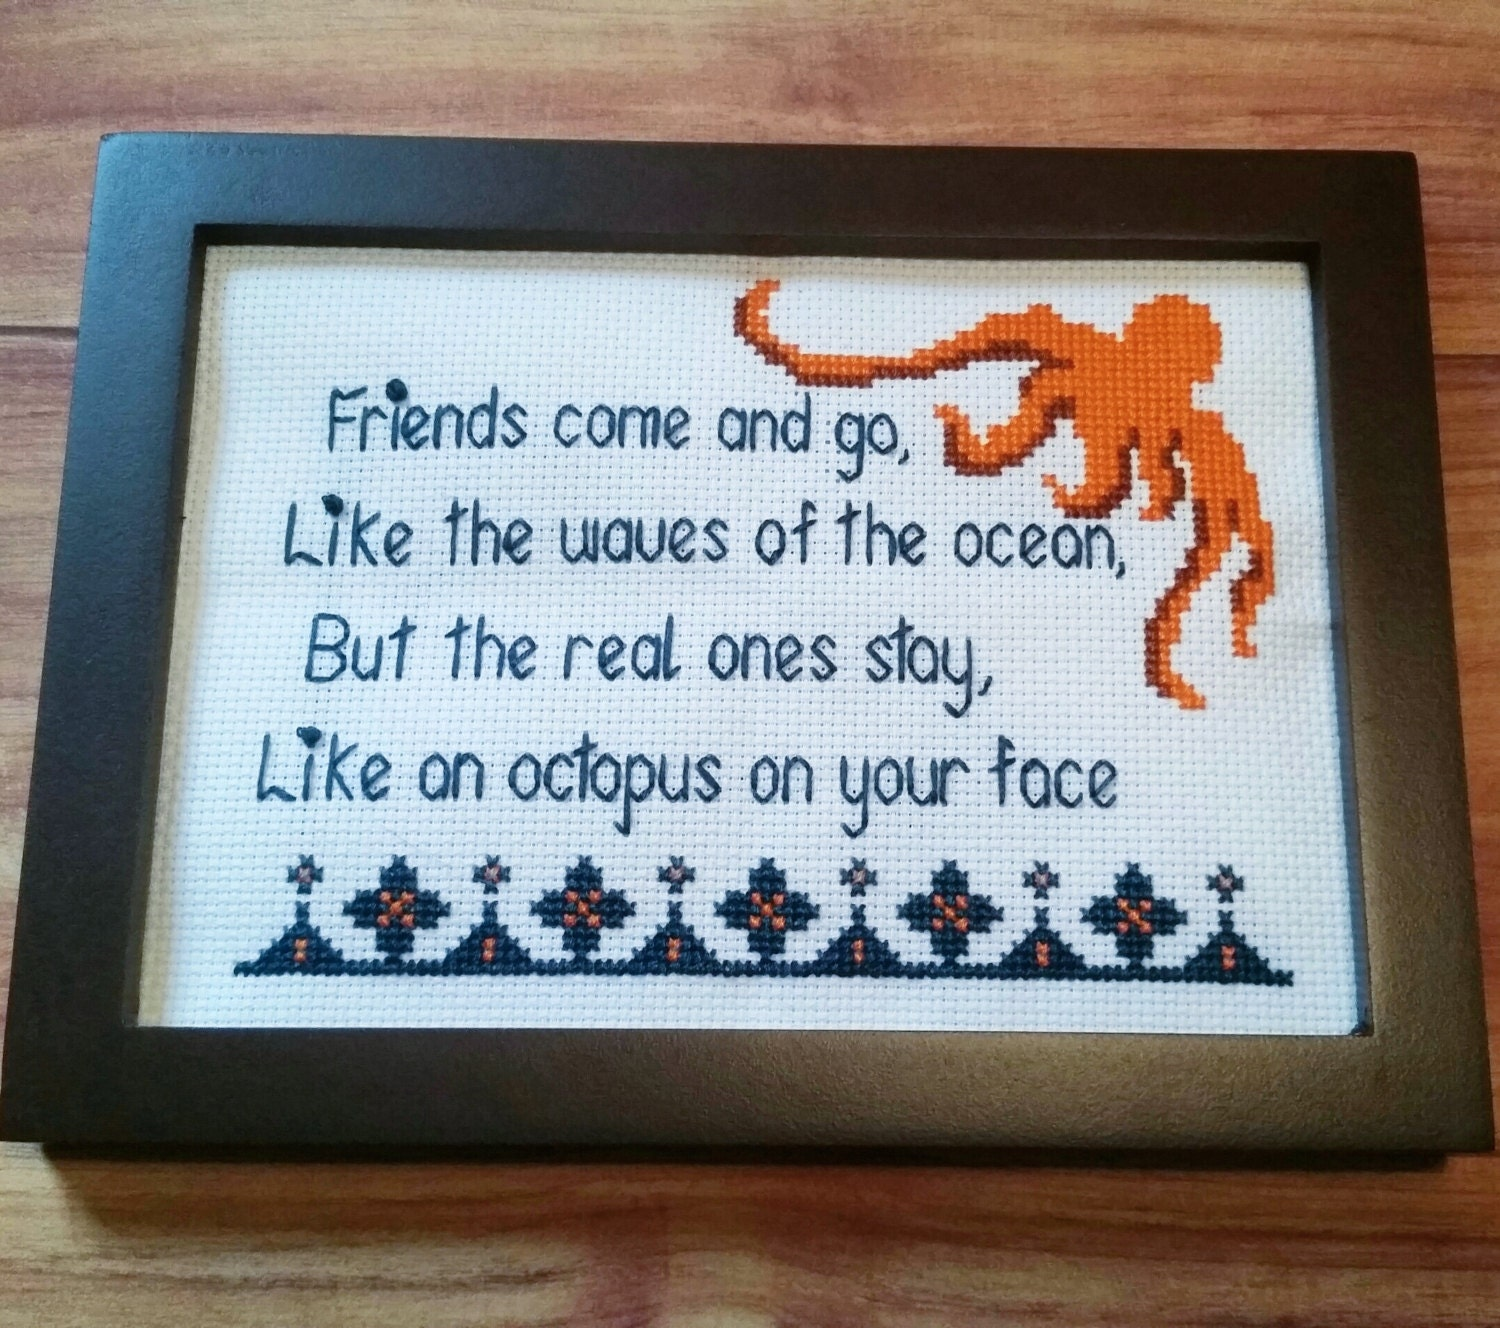 Friends are Like an Octopus on your Face - Cross Stitch Kit